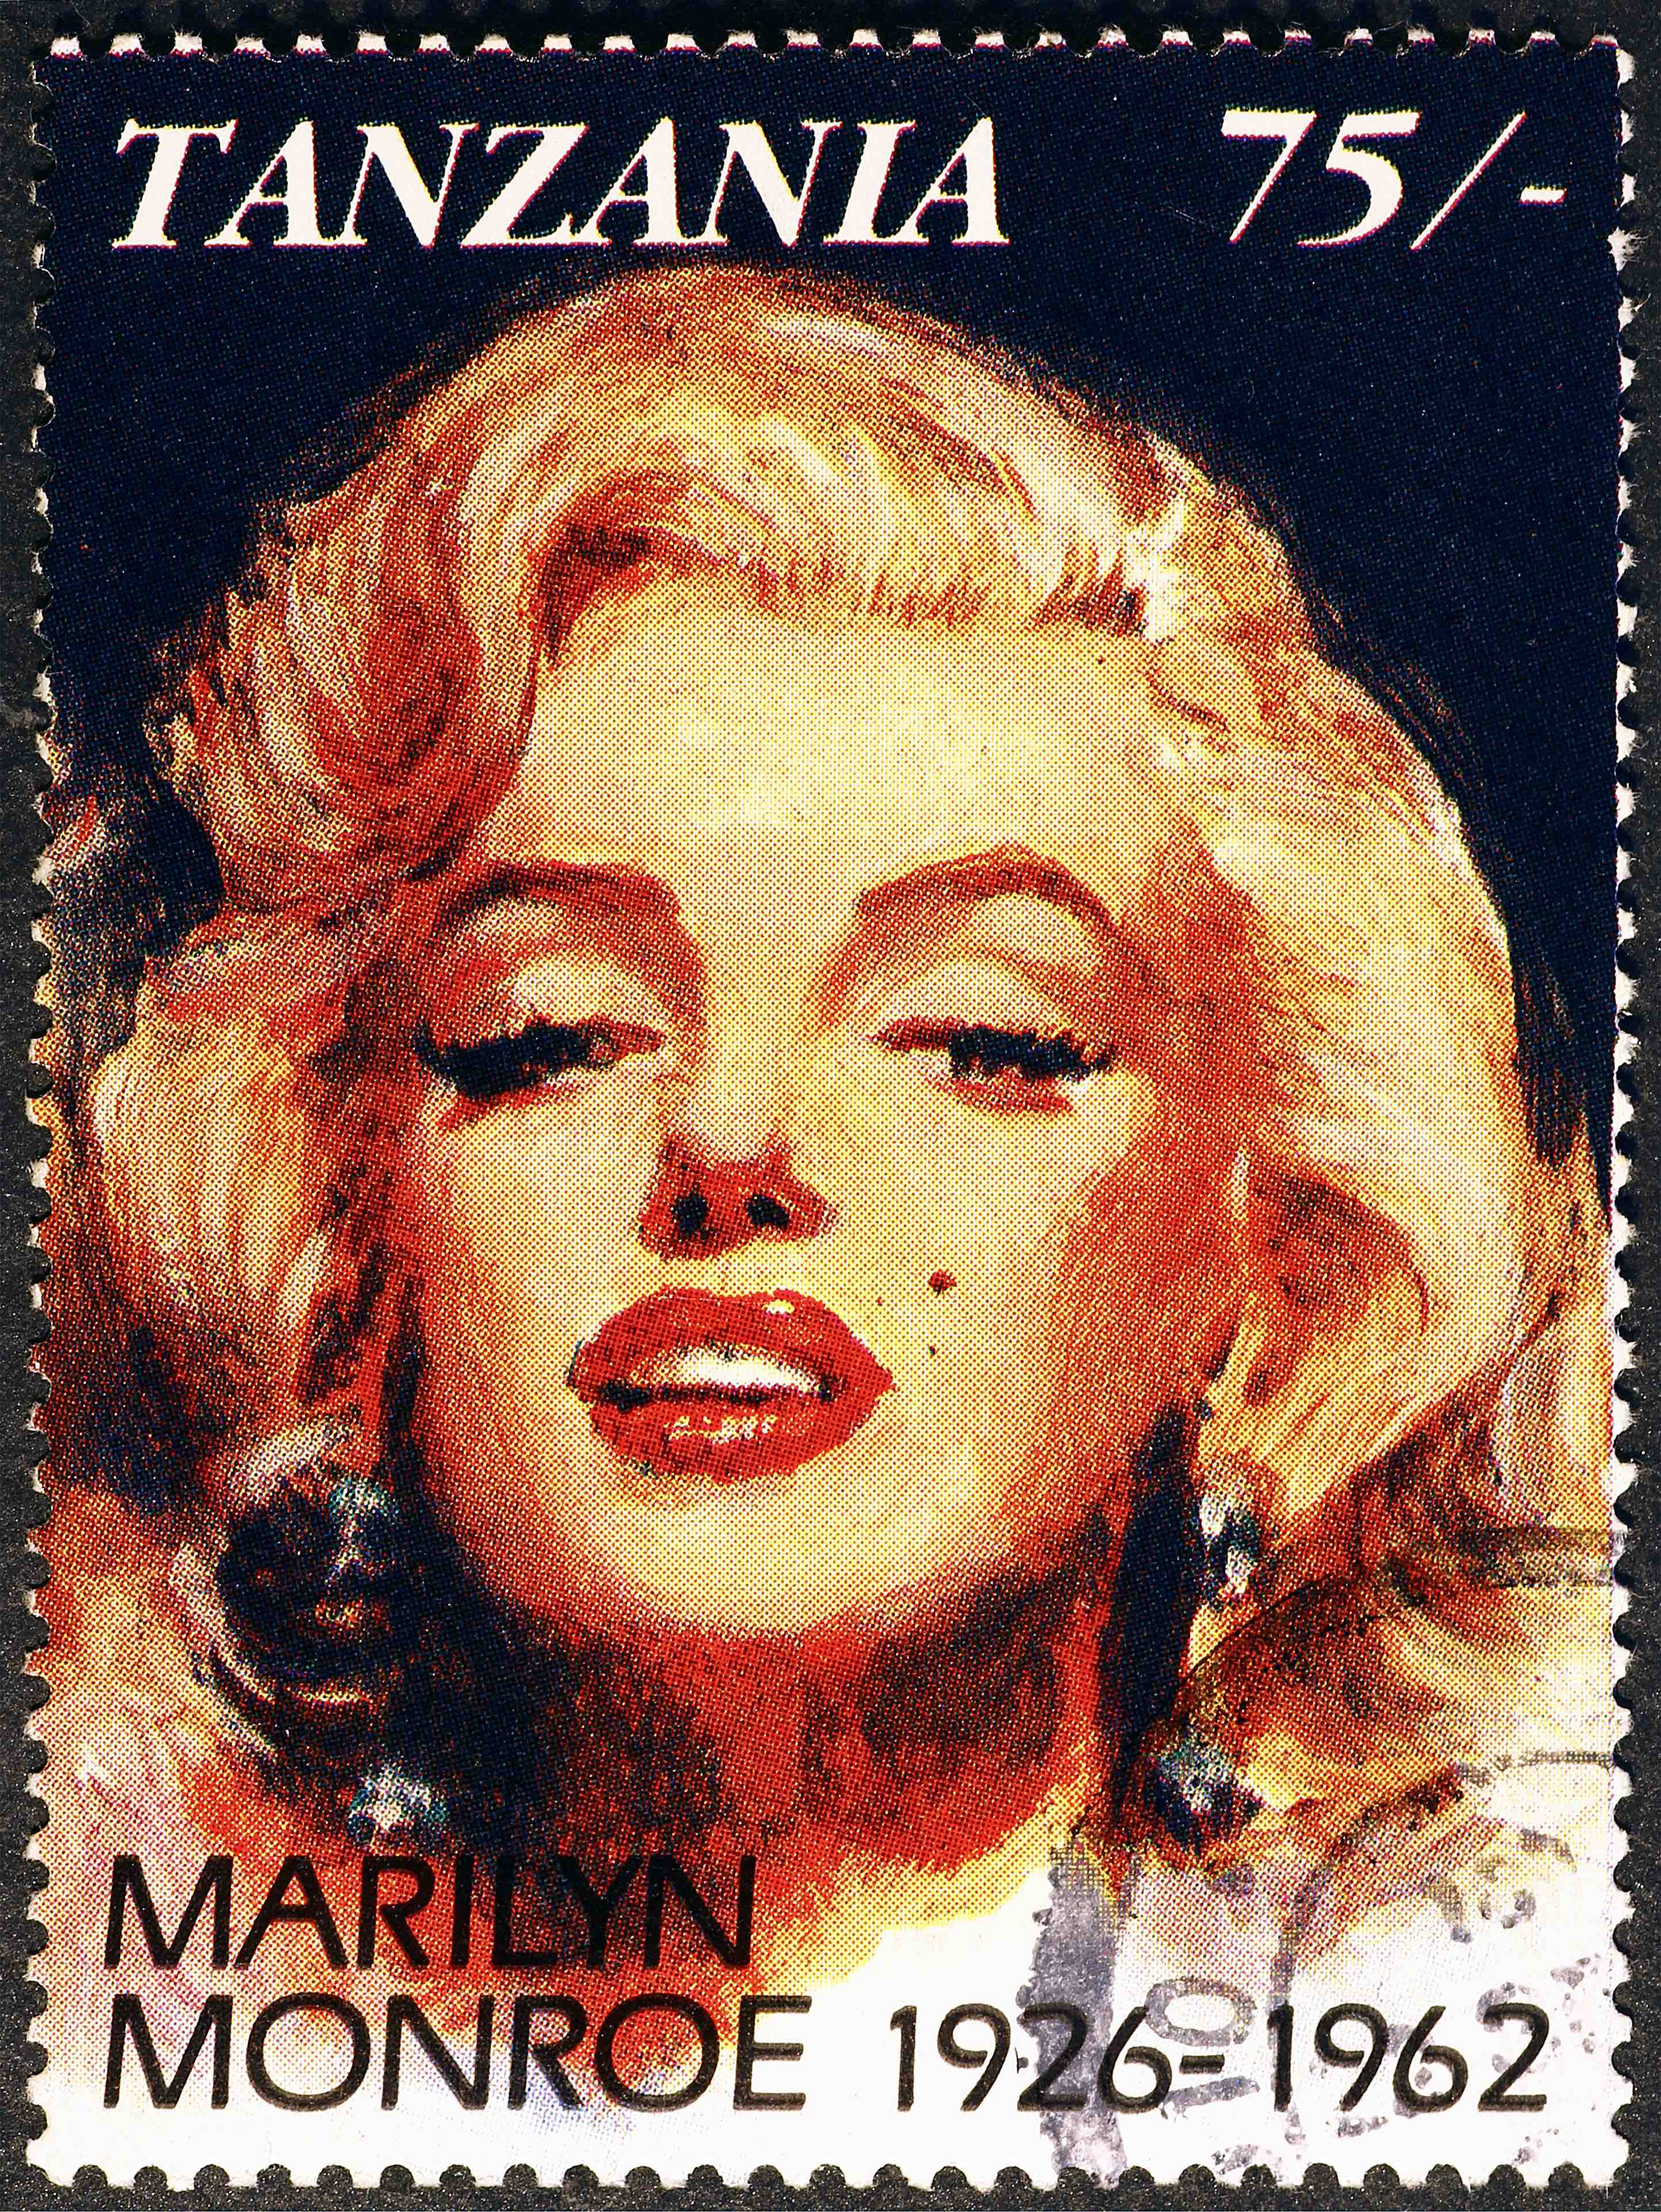 Marilyn Monroe portrait on stamp